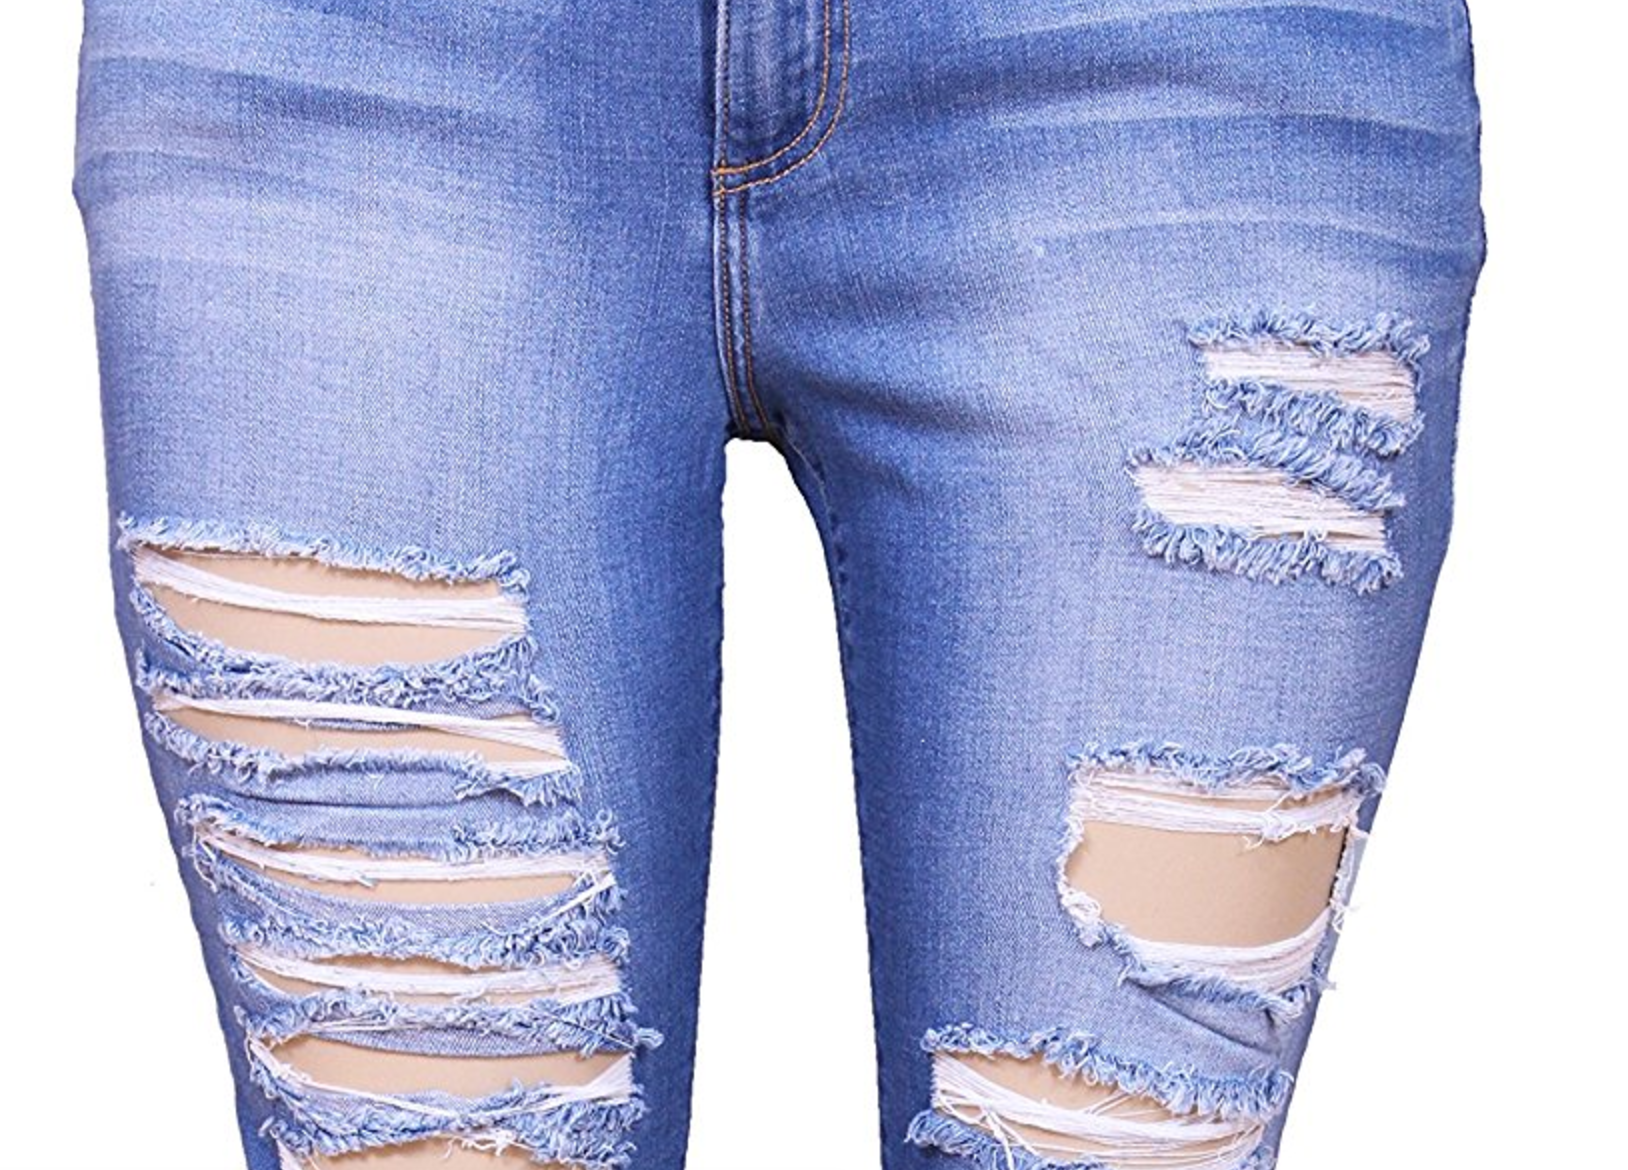 Ultimate Destroyed Faded Skinny Jeans (Sizes 18 - 22)